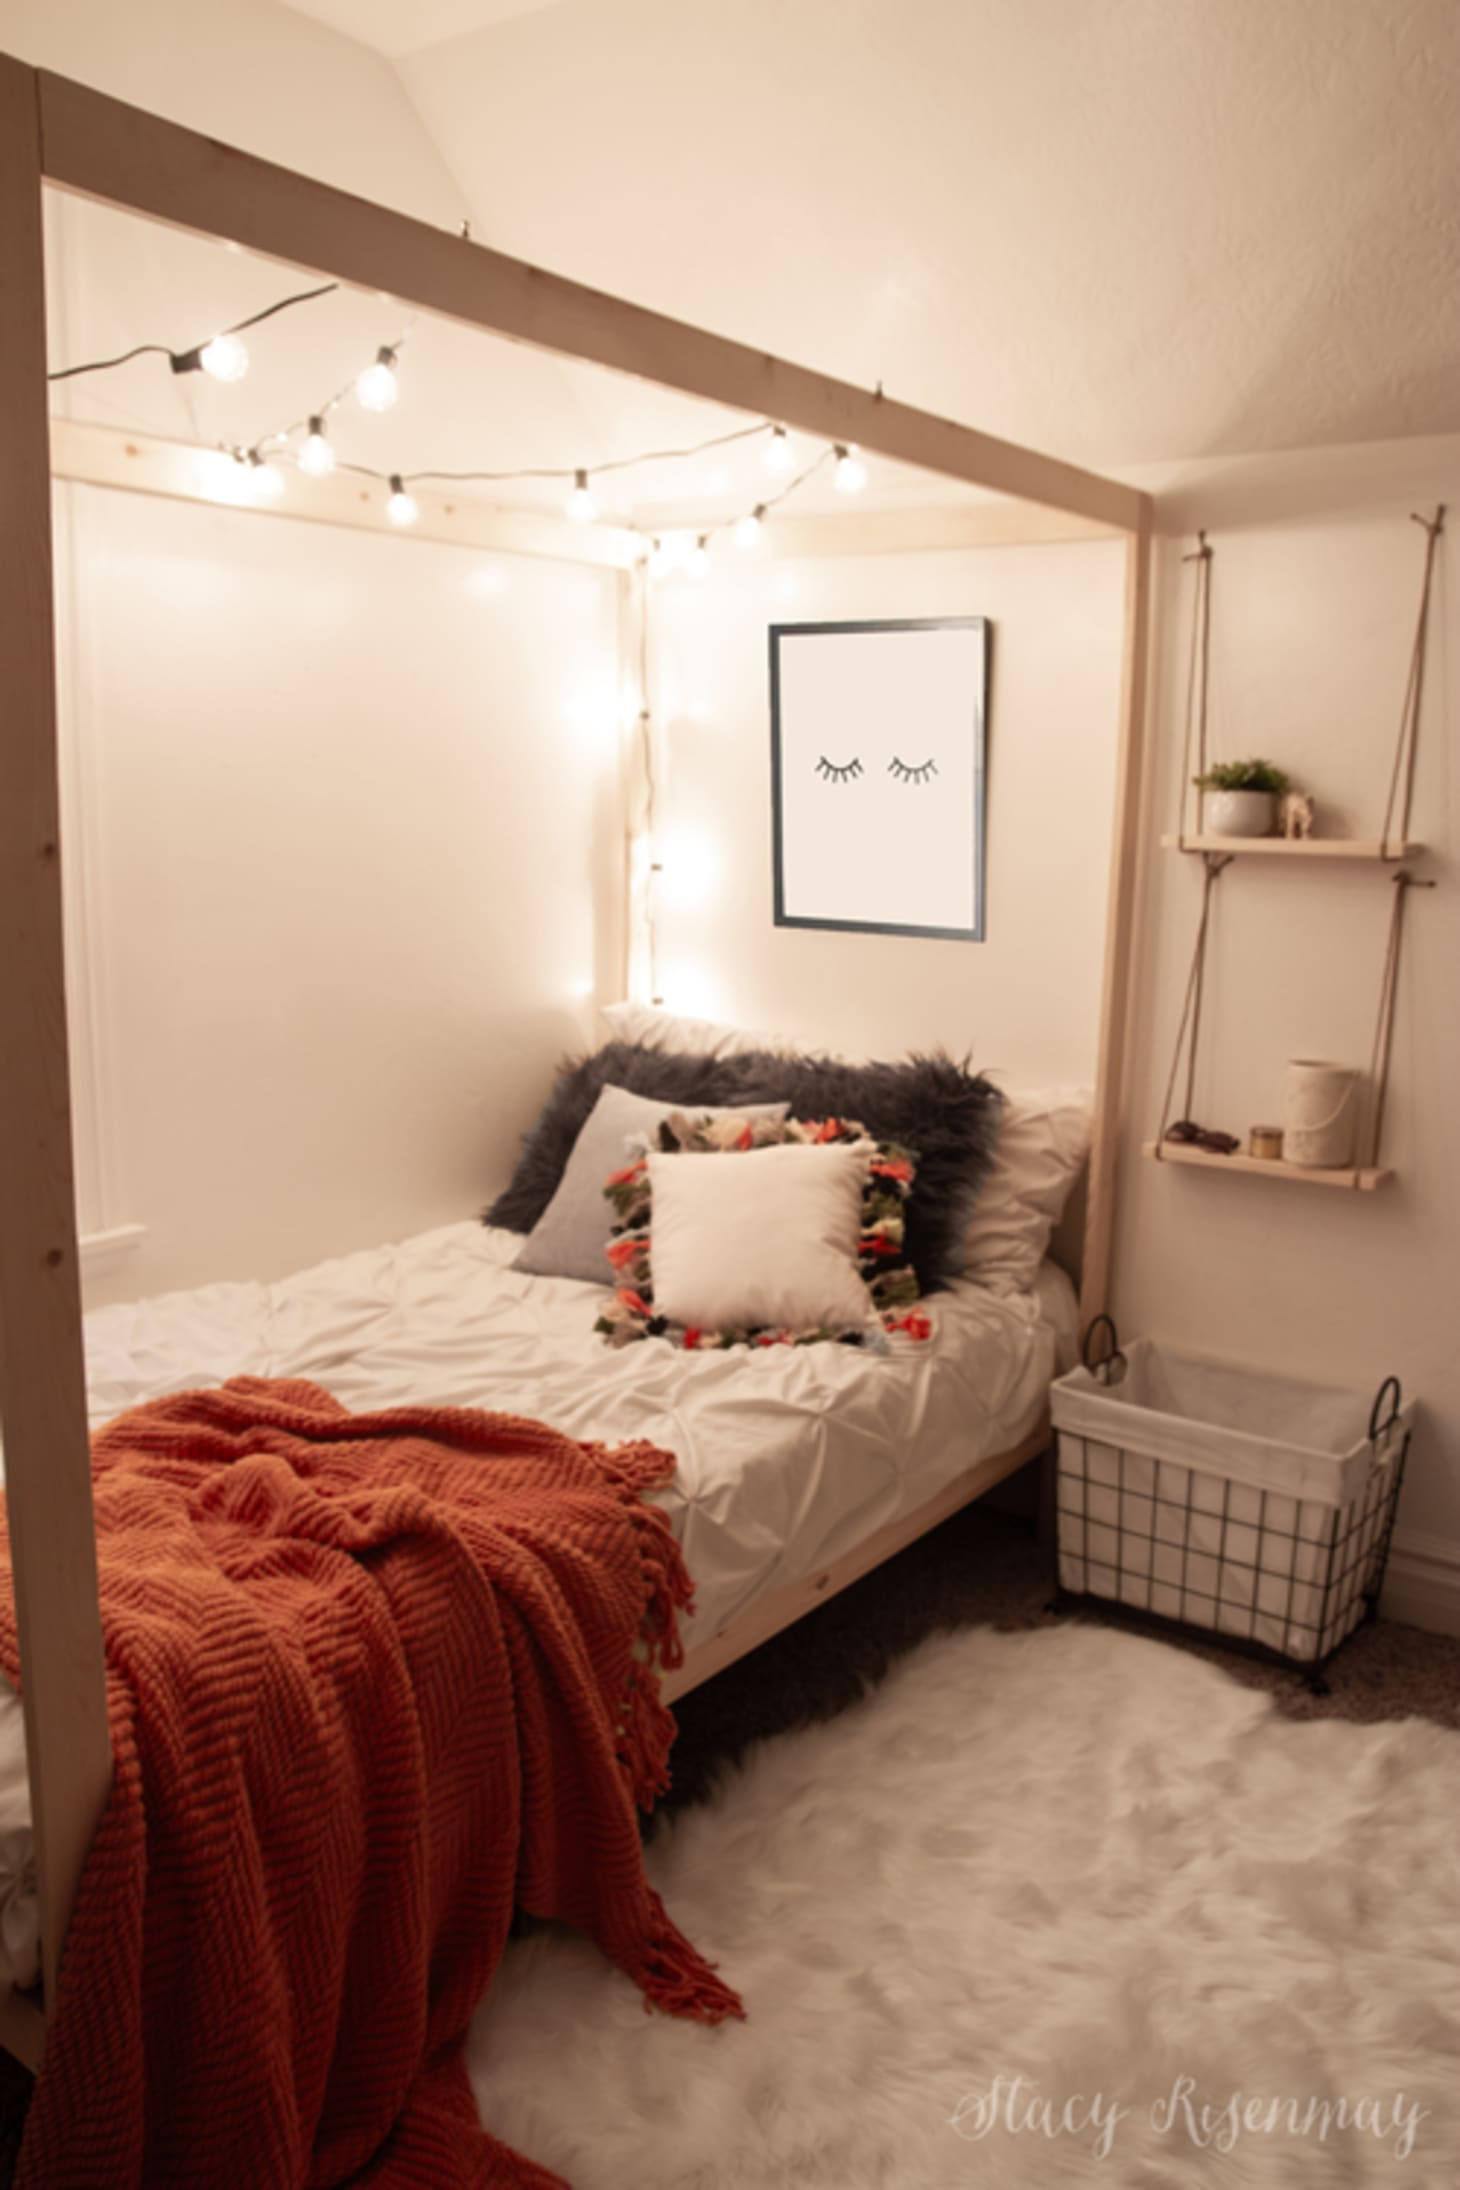 The Best Teen Bedroom Ideas For Your Teenager | Apartment ... on Small Teen Bedroom  id=99640